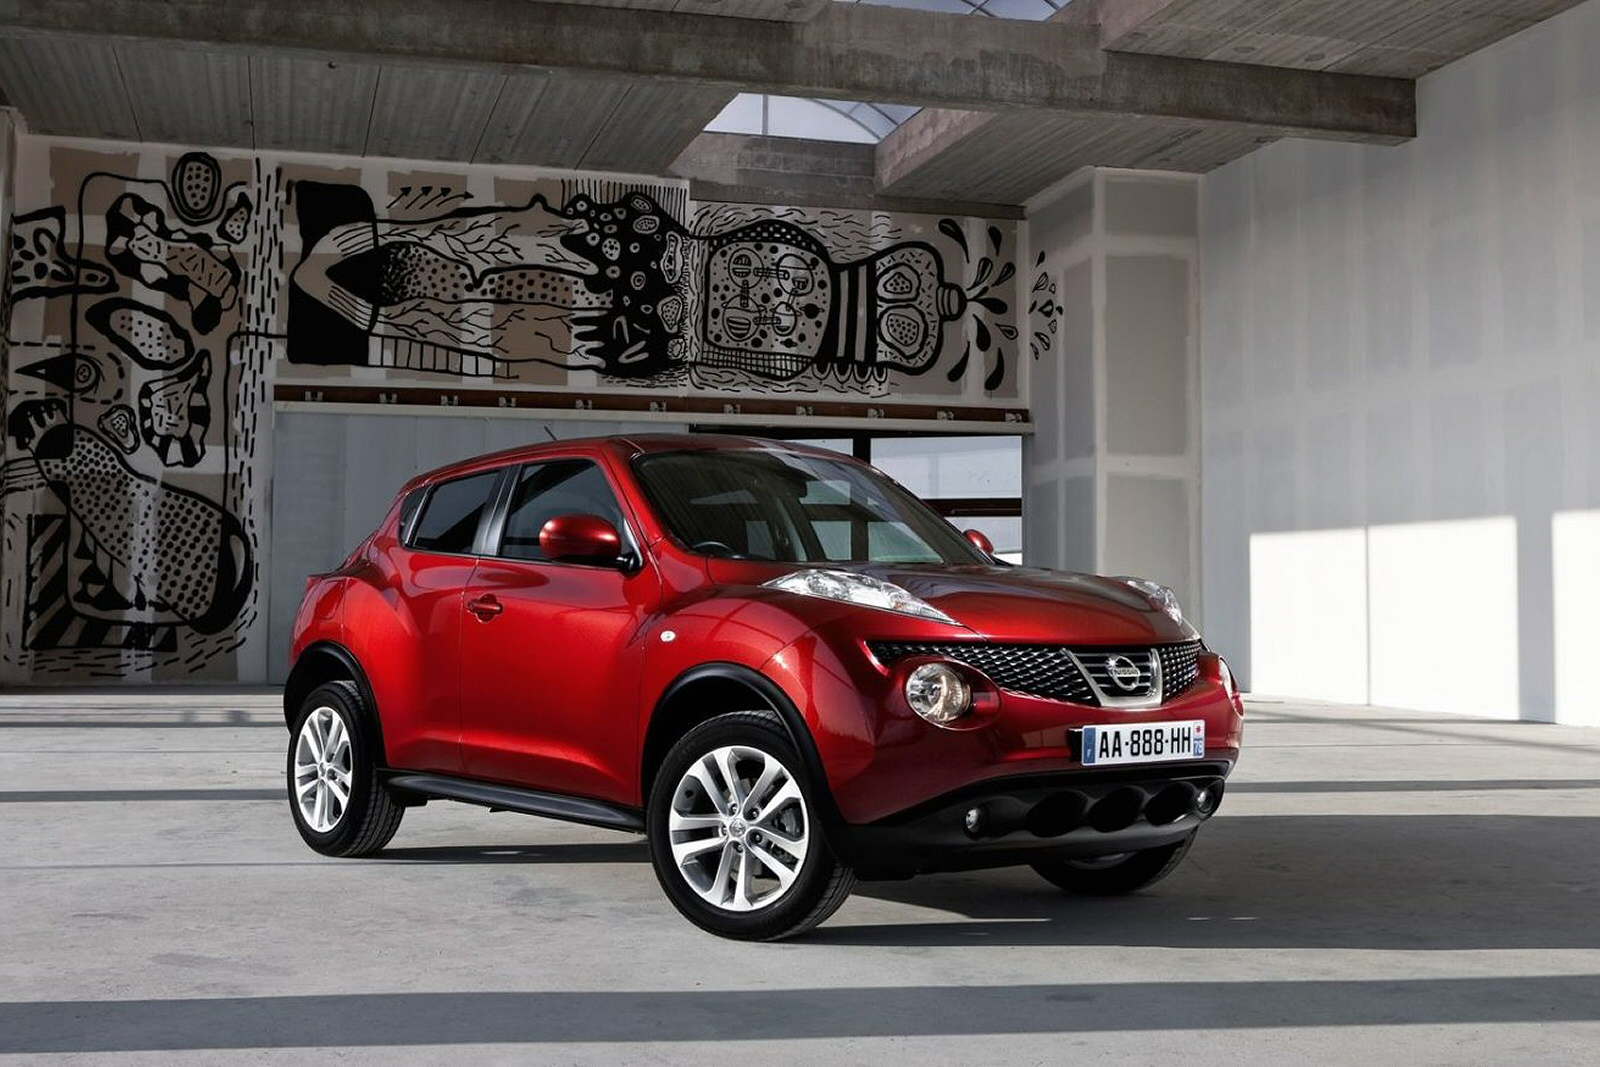 new nissan juke 1 2 dig t tekna 5dr petrol hatchback for. Black Bedroom Furniture Sets. Home Design Ideas